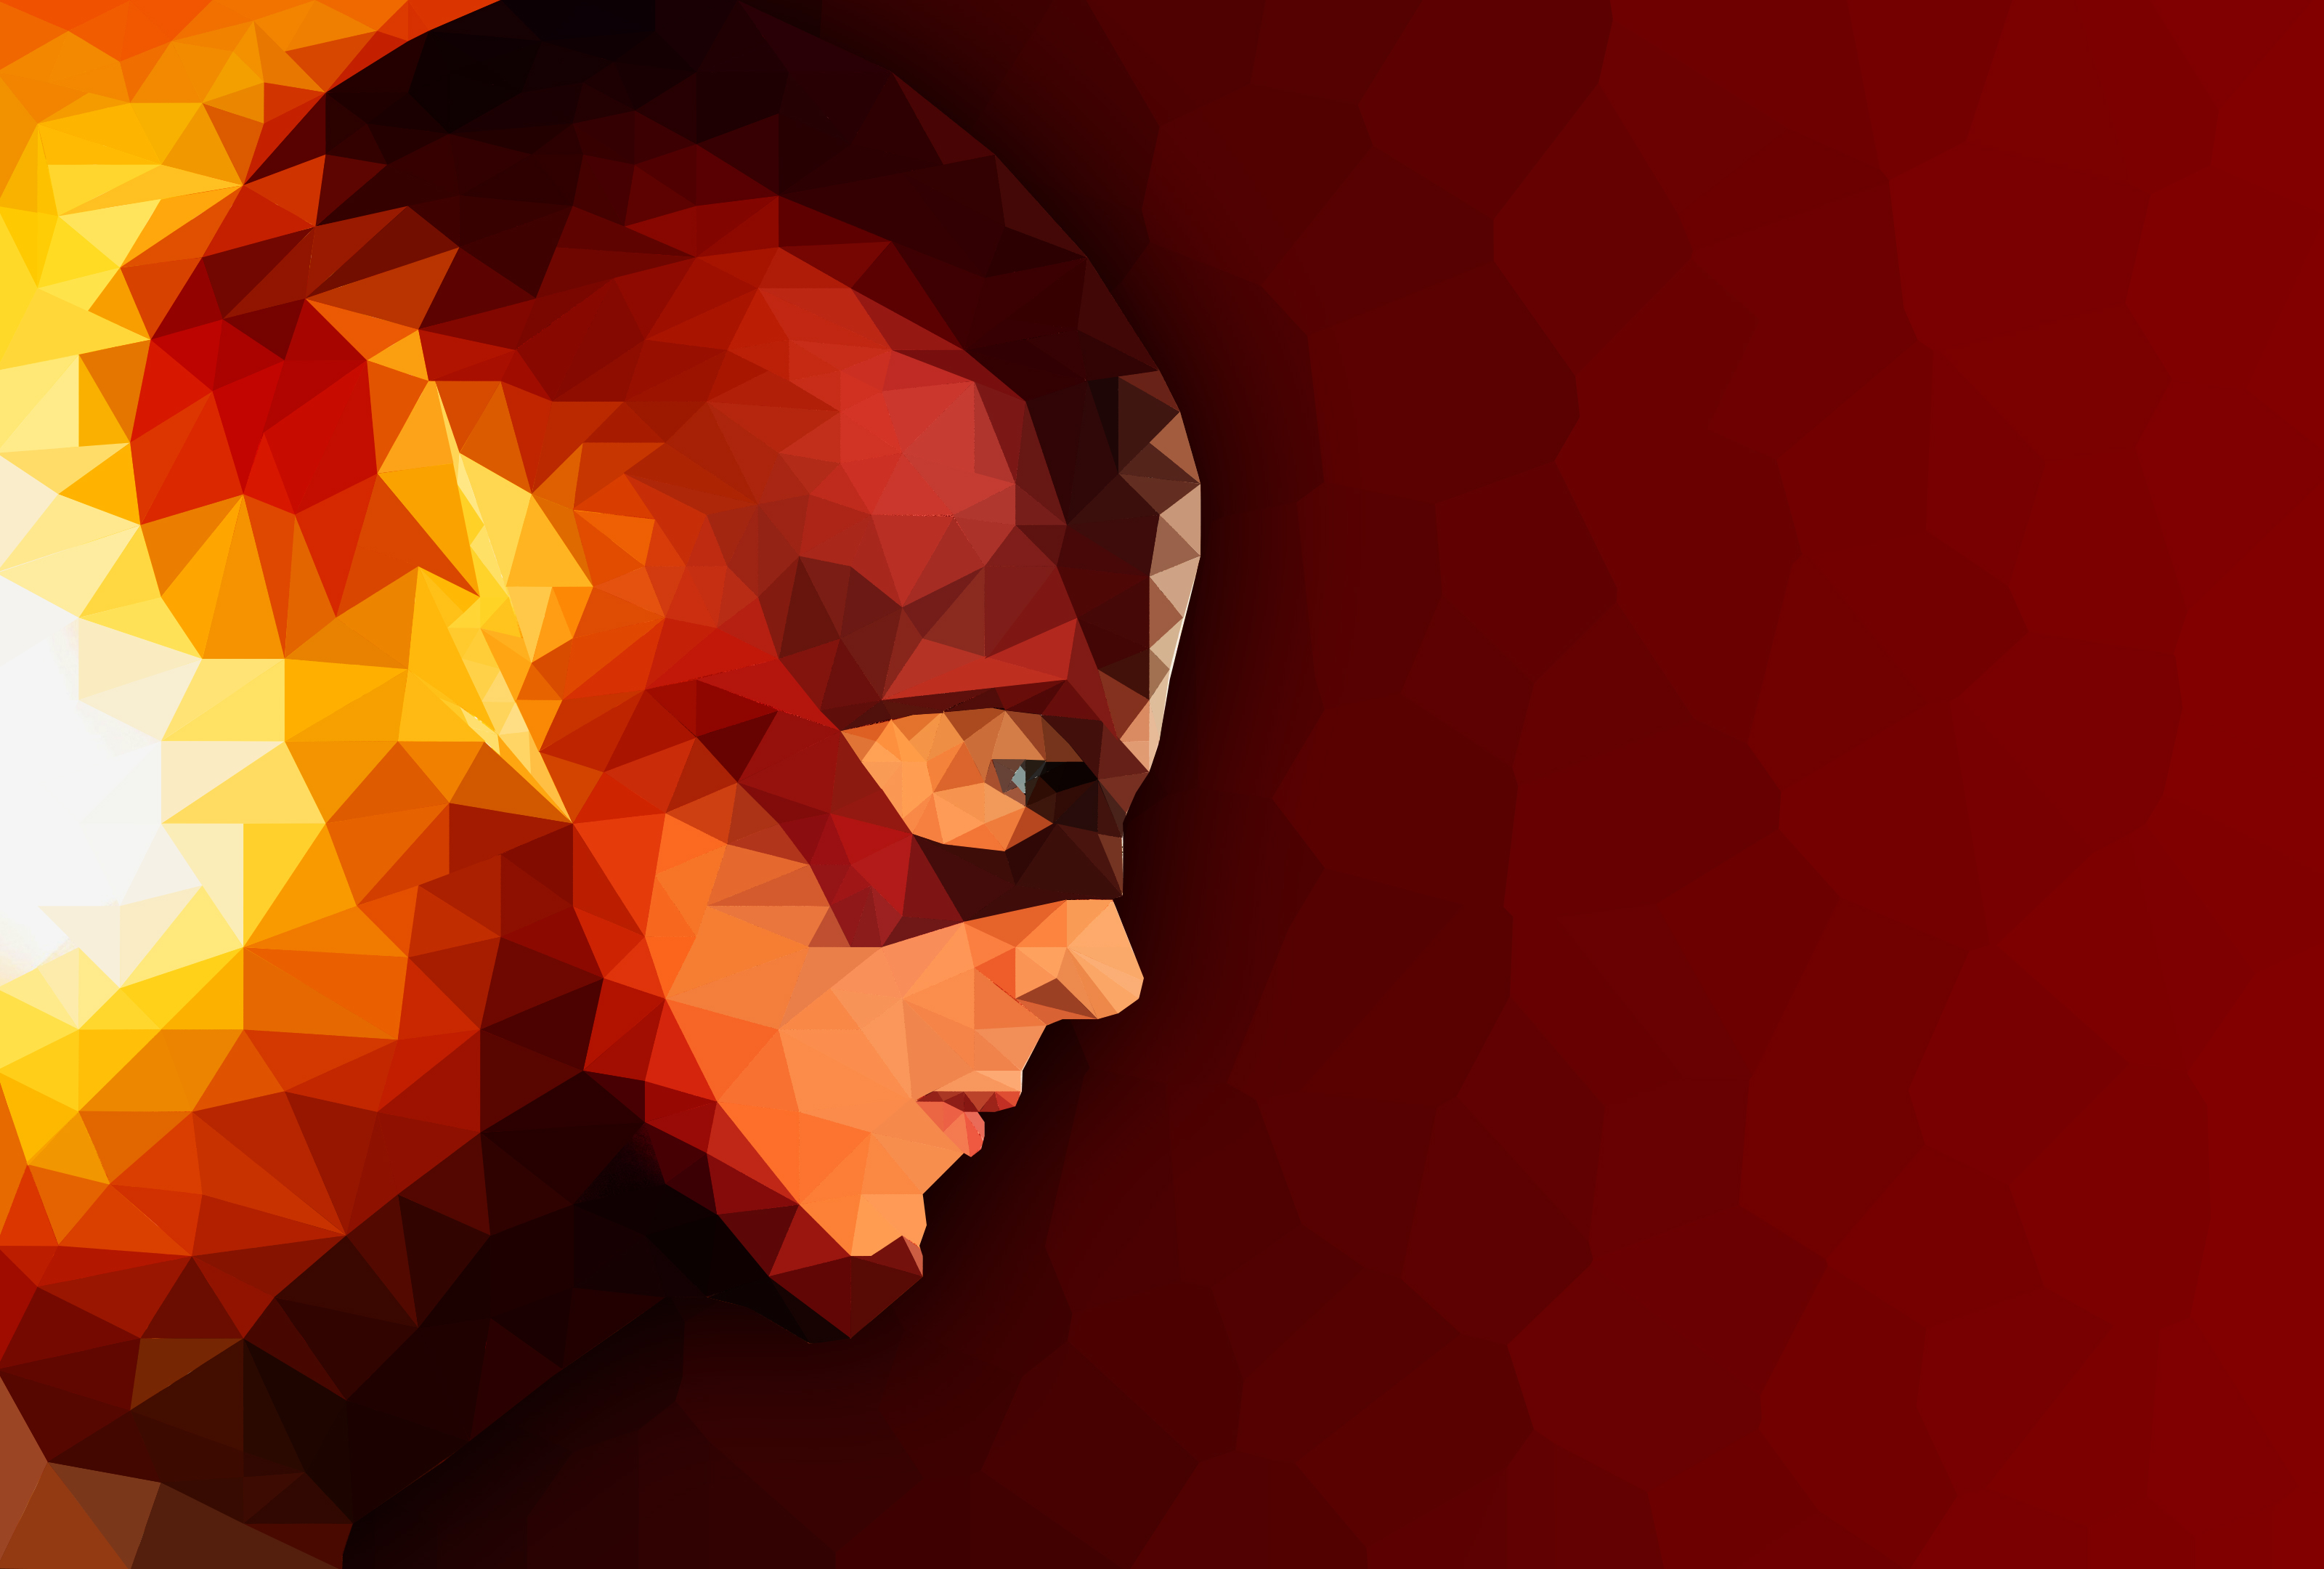 the flash abstract artwork, hd superheroes, 4k wallpapers, images